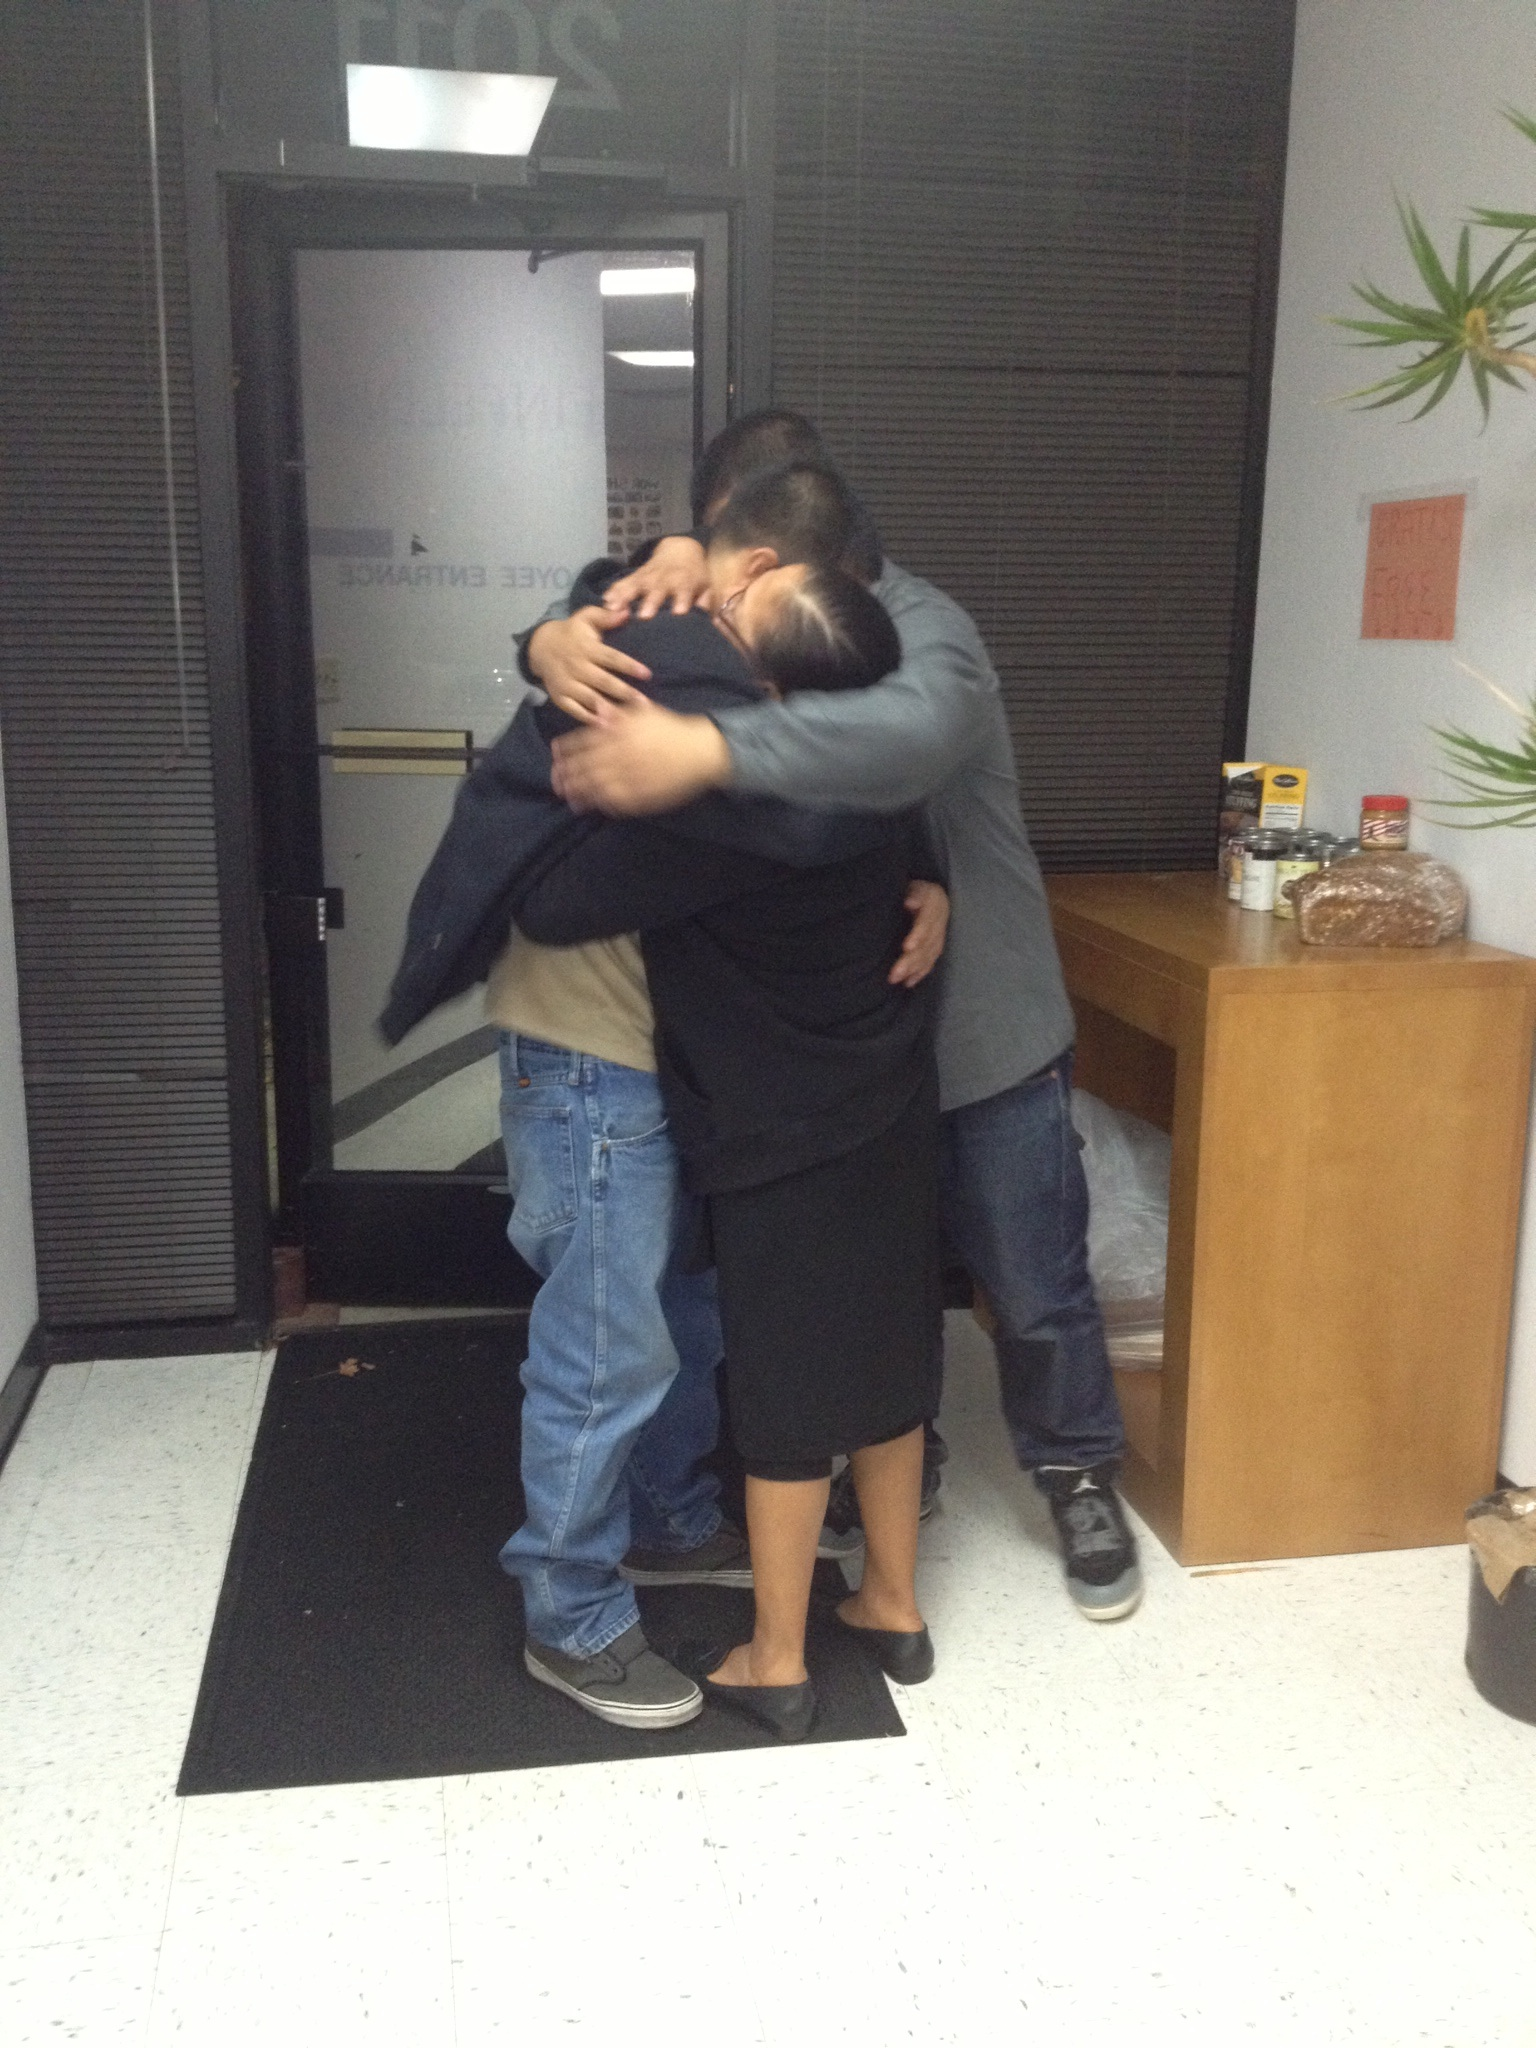 Jesus and his family embrace after his release.